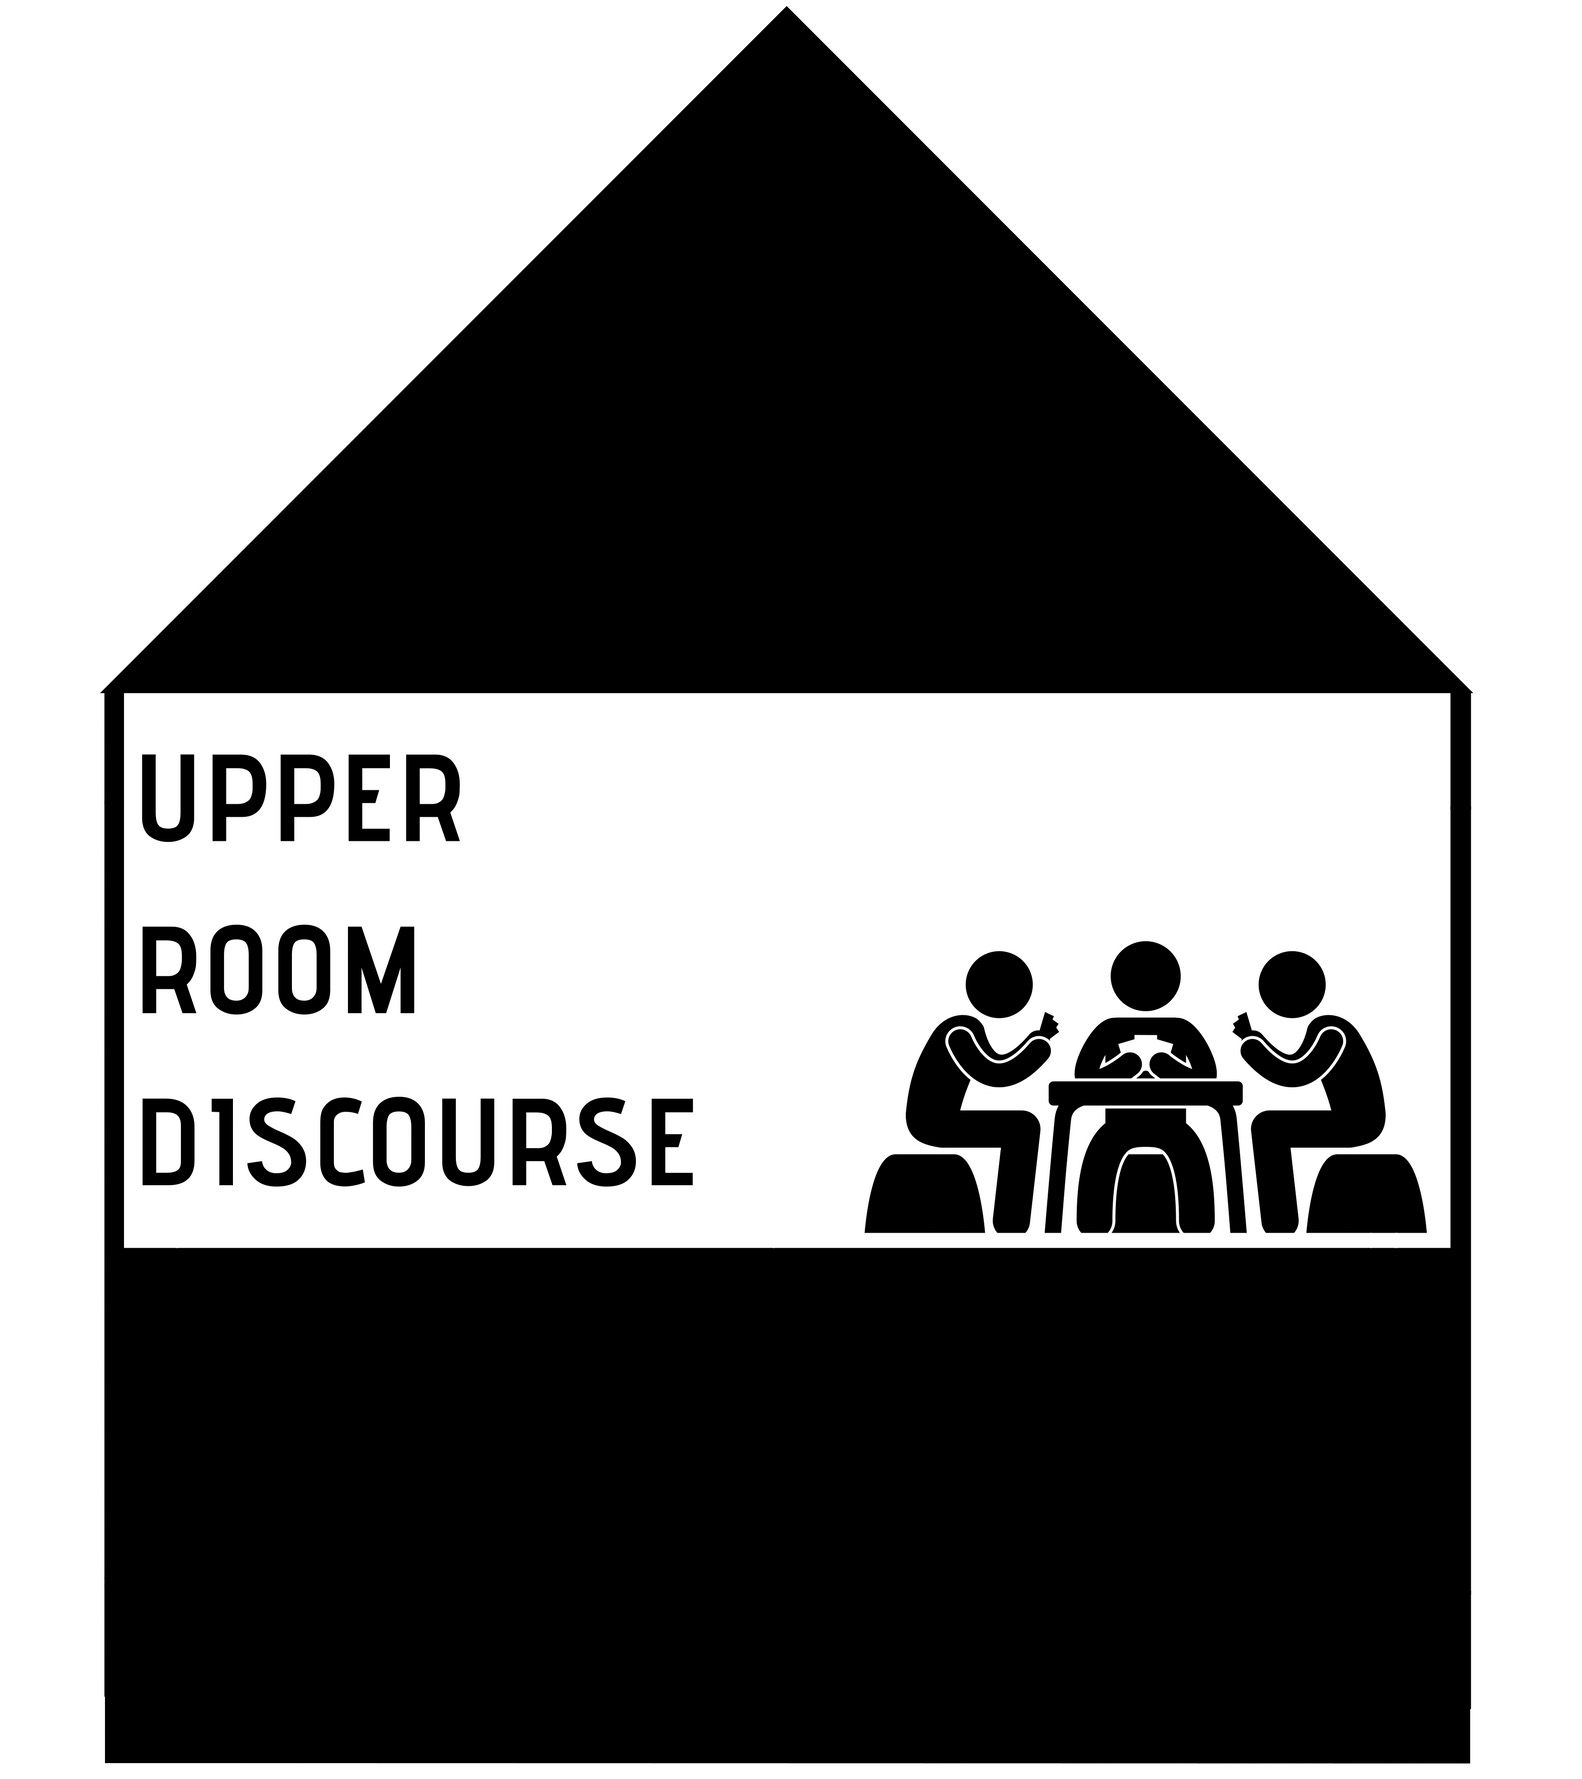 Copy of Copy of UPPER ROOM DISCOURSE(2)_edited.jpg